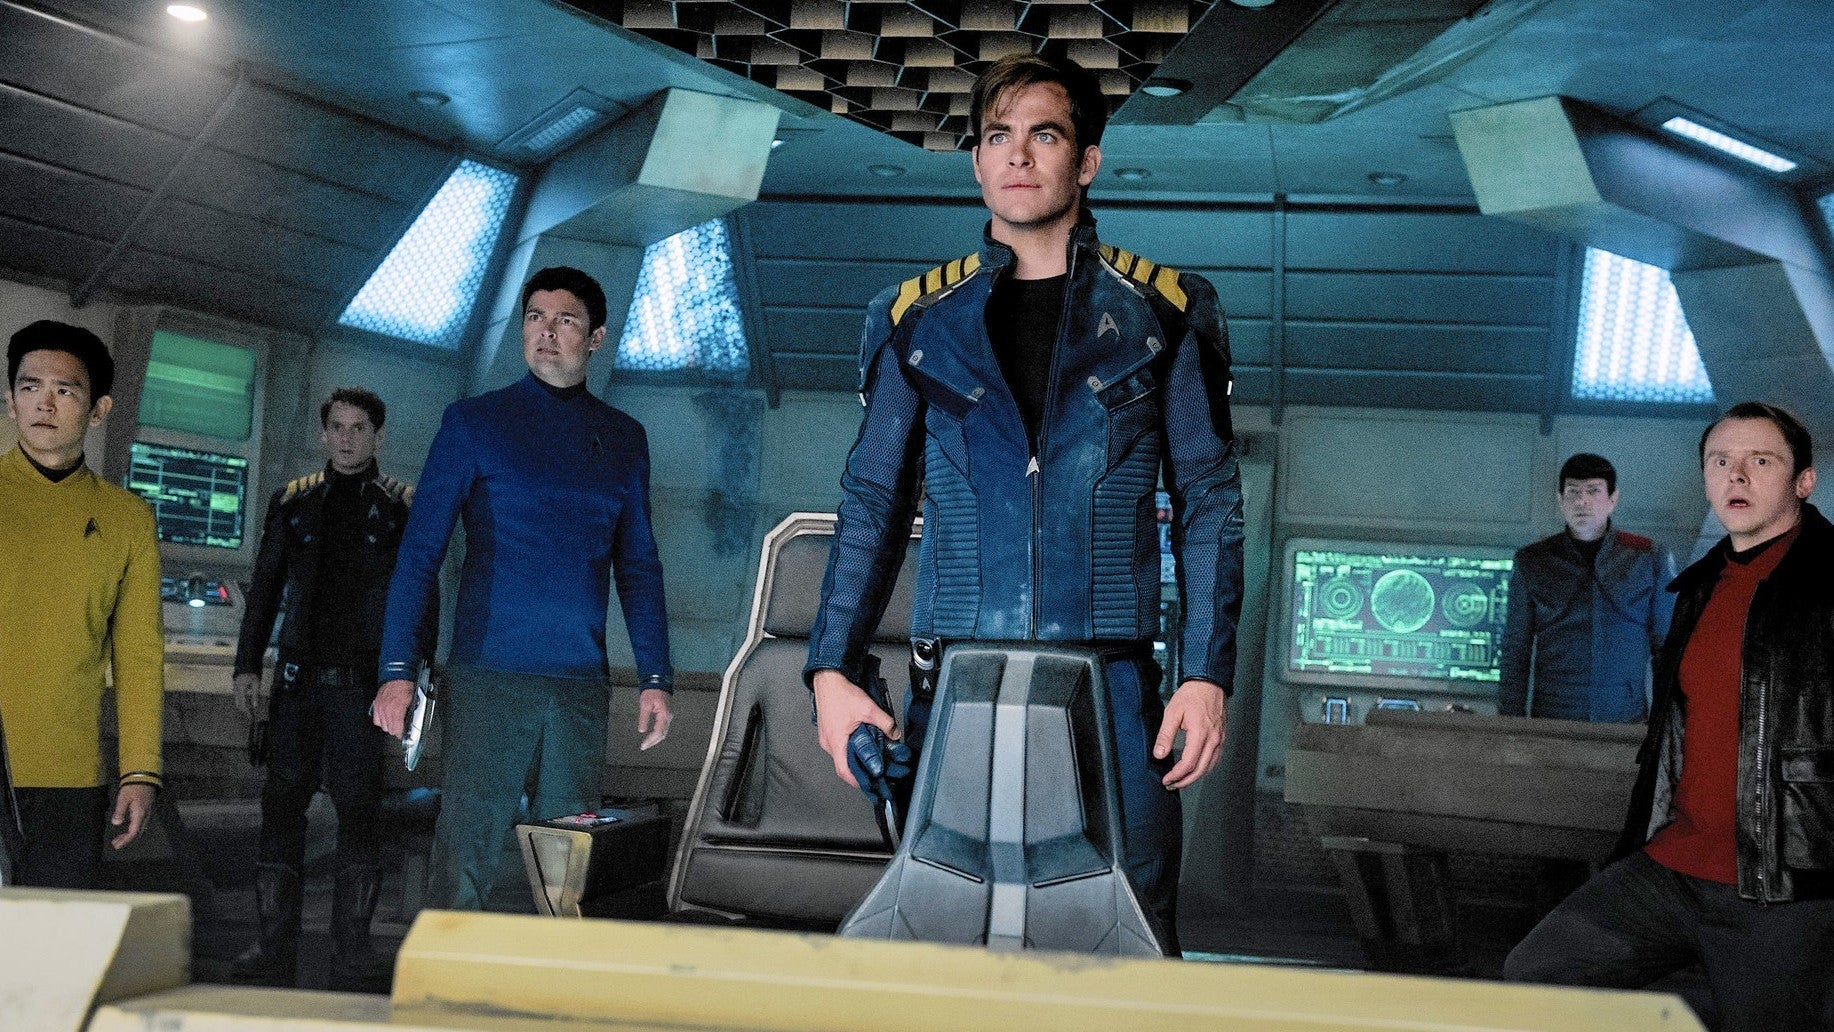 Noah Hawley Says His Star Trek Will Respect The Series While Forging A 'New Beginning'